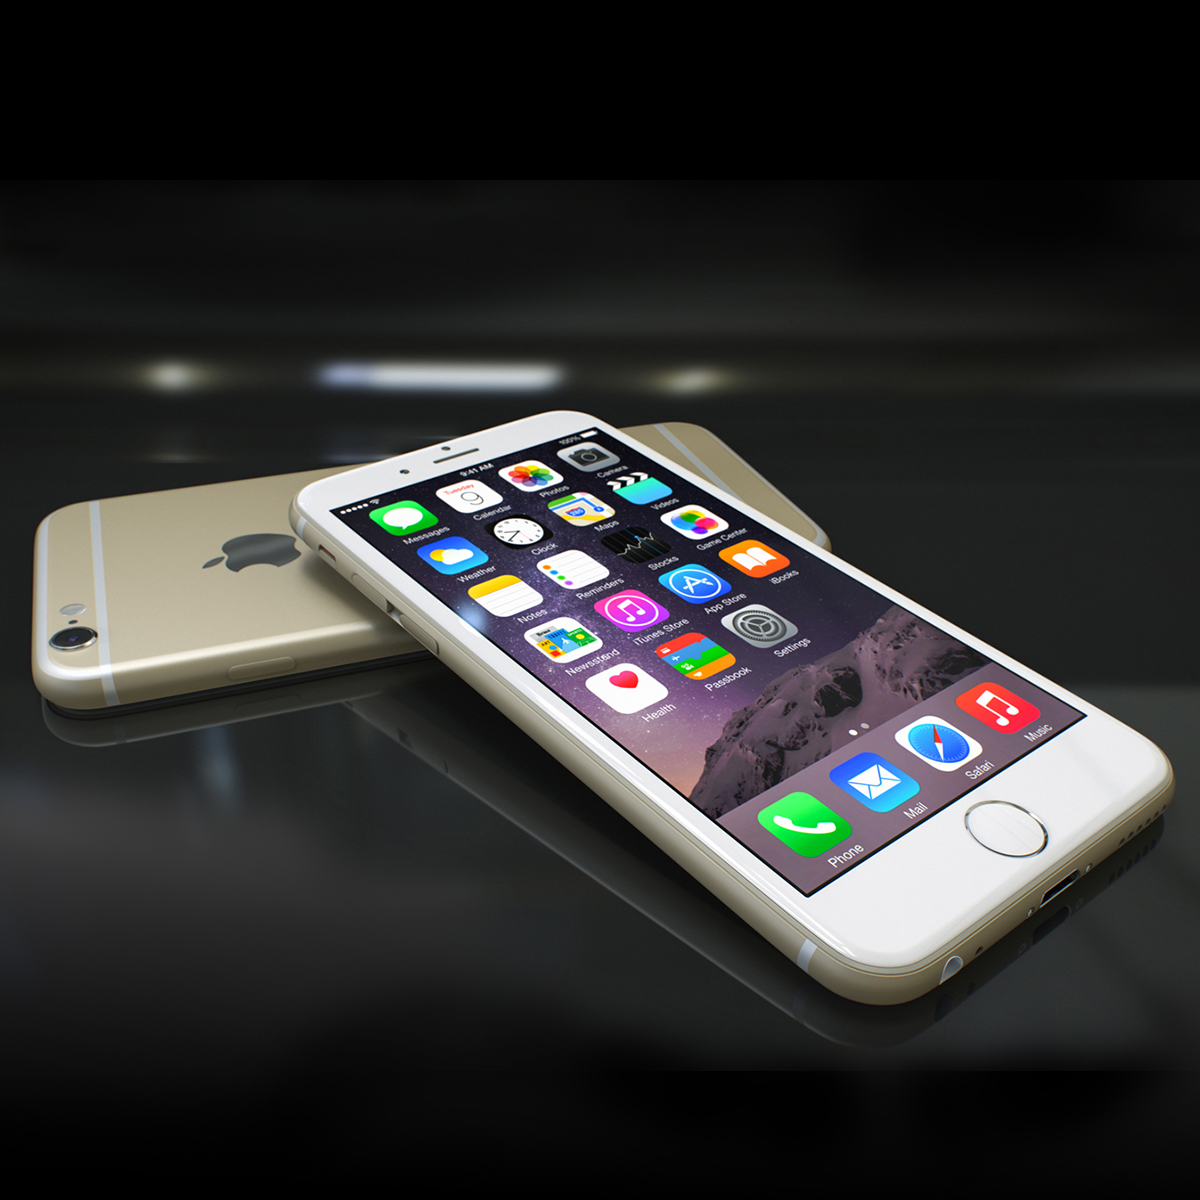 Apple iPhone 6 3d líkan max fbx MA MB texti Obj 278465